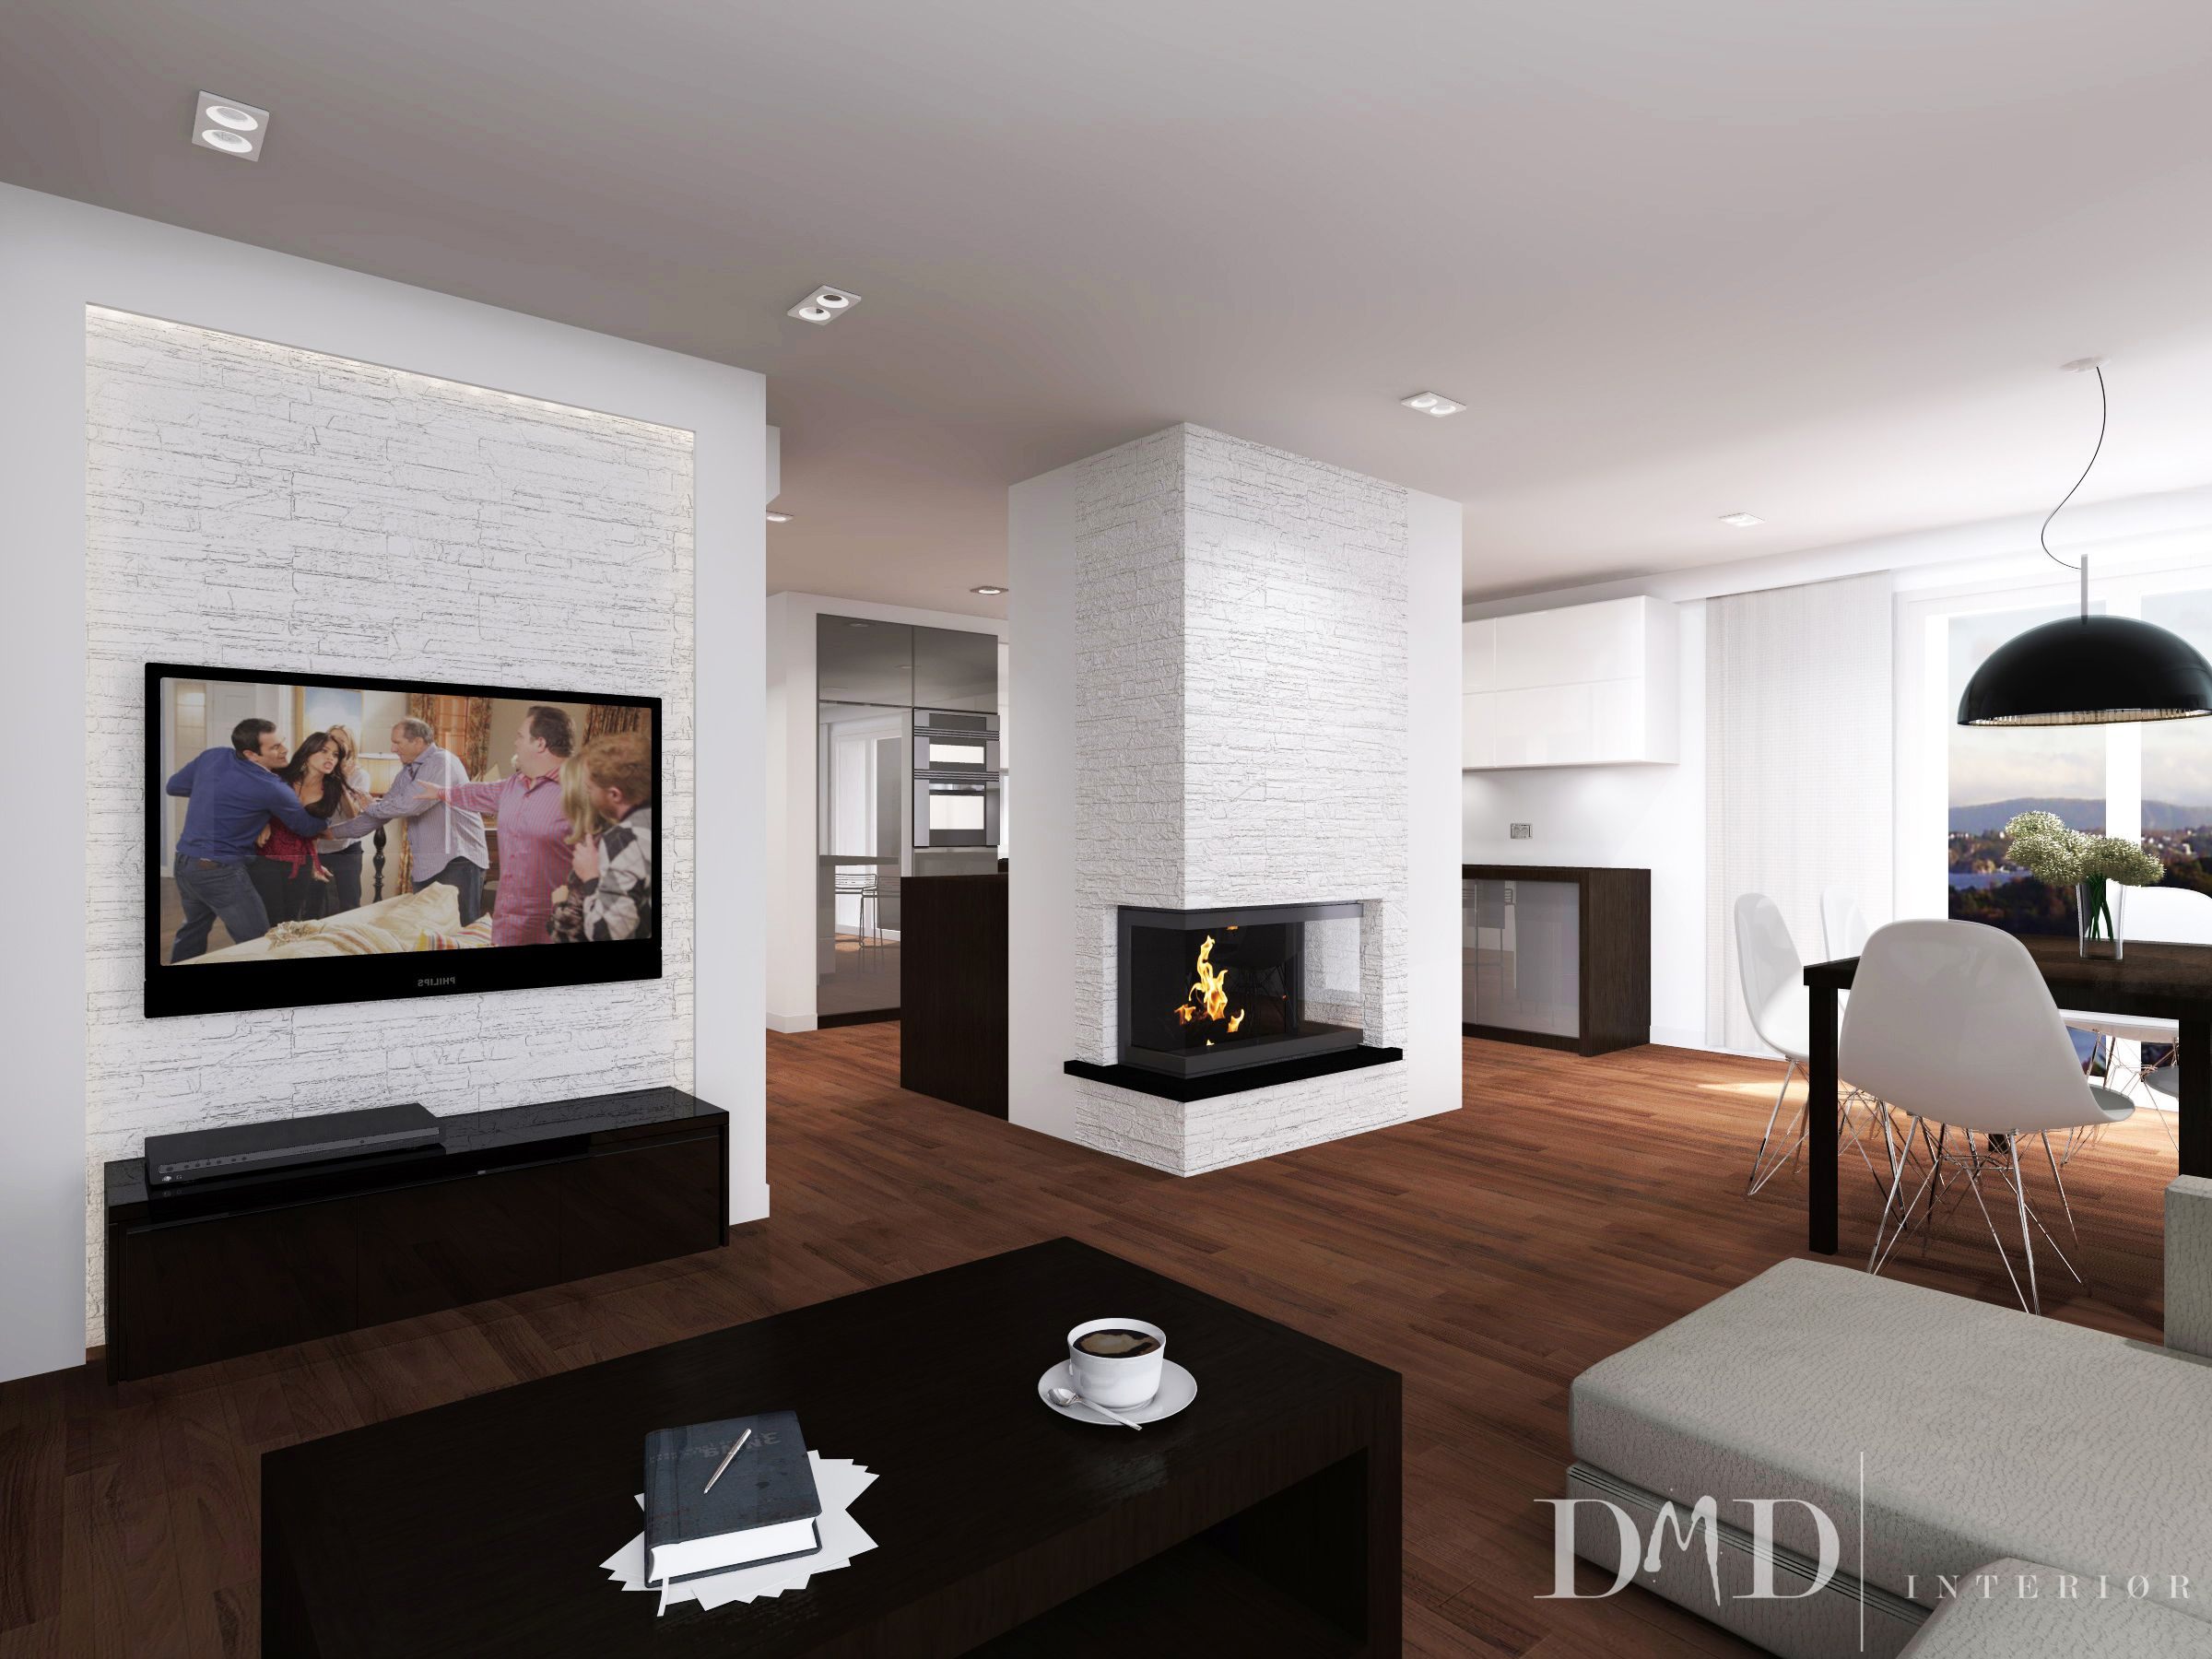 Interior design project of an apartment at Ytre Arna DMD interi¸r